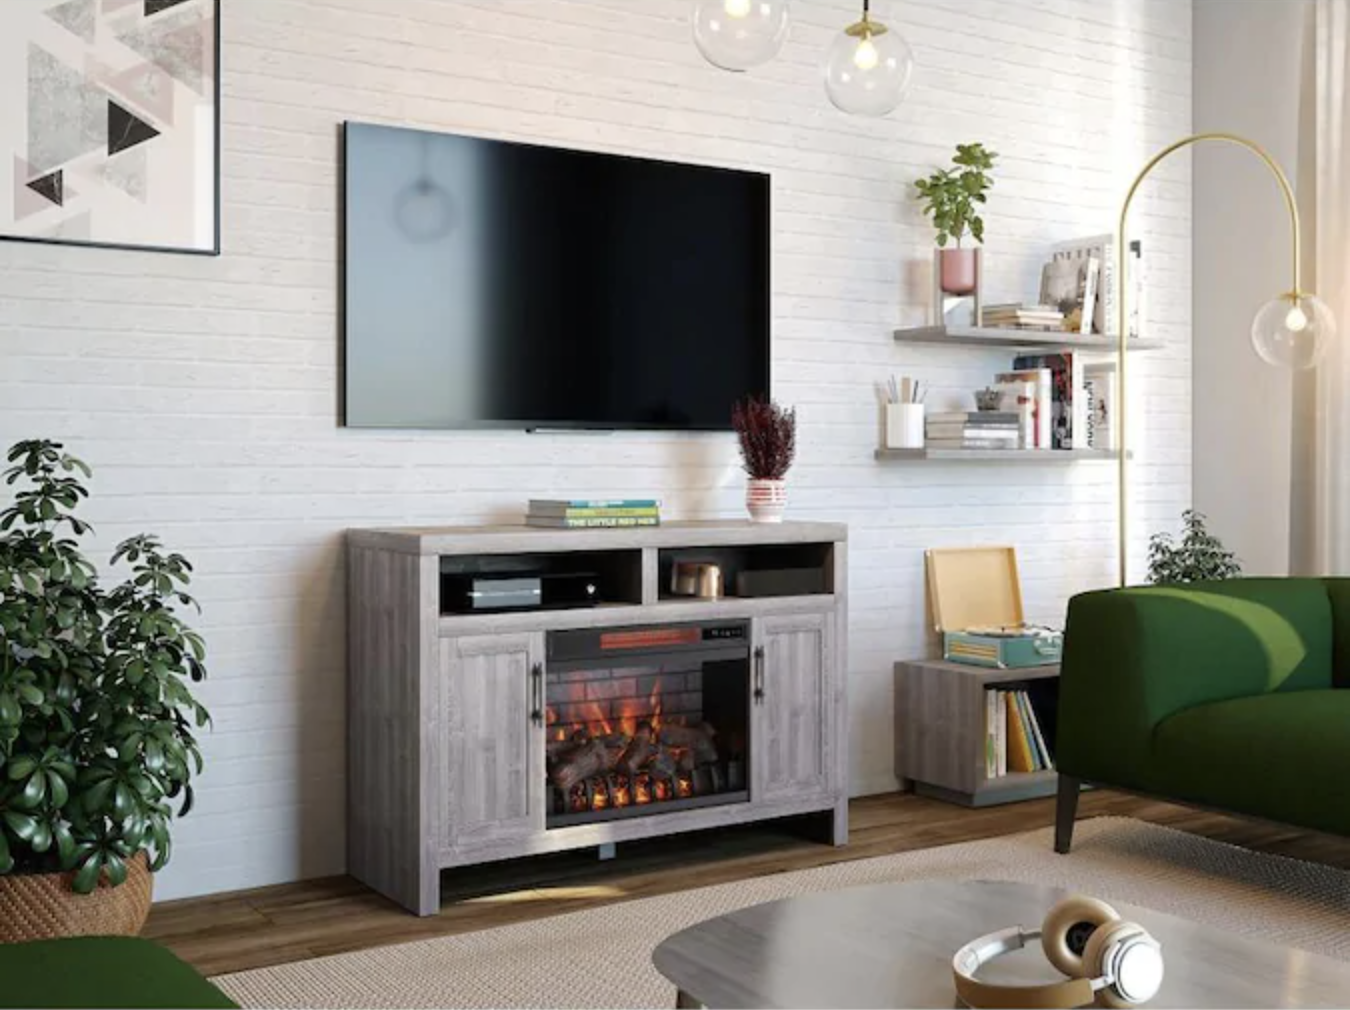 electric fireplace heater in living room beneath TV